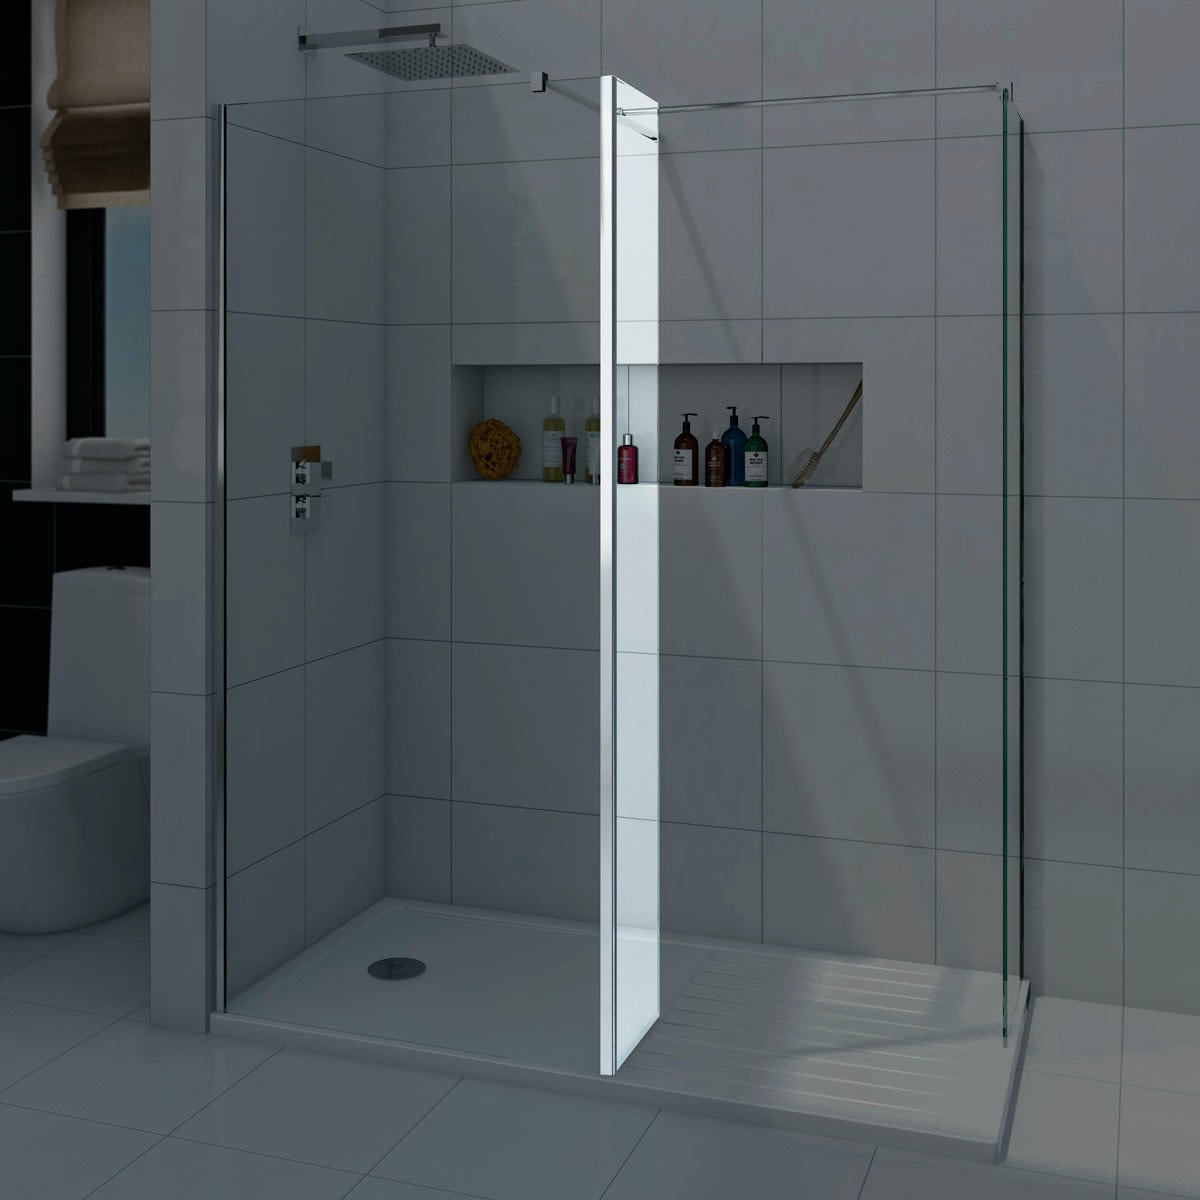 for your vs shower enclosure best project which or wet tray room is